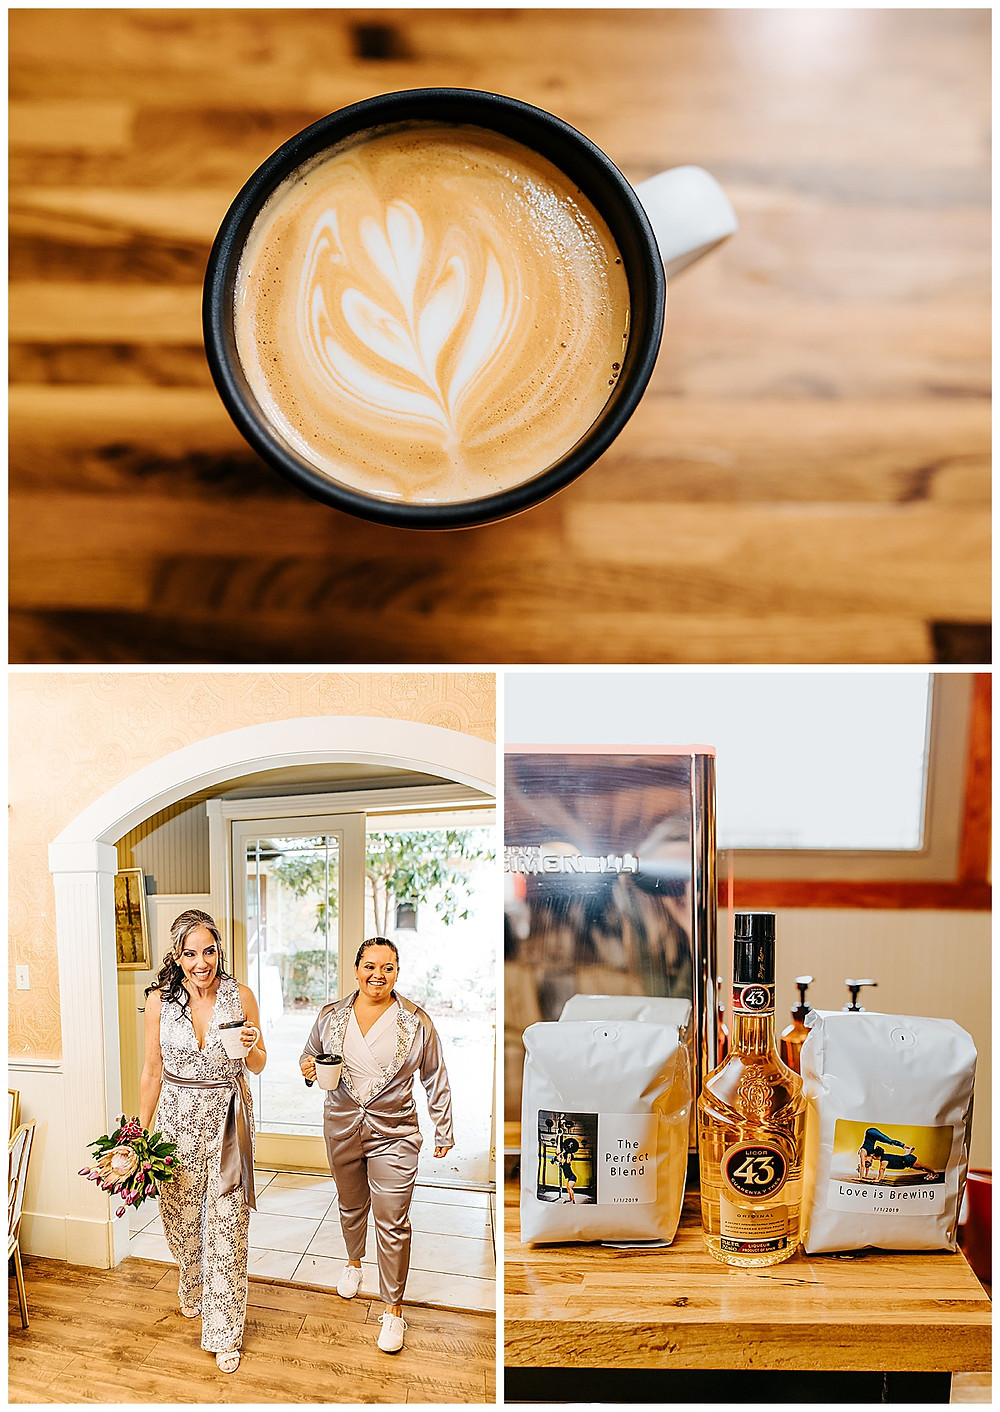 Lesbian Wedding | Boerne Wedding | Boerne Wedding Planner | Same Sex Wedding | Spinelli's Venue | Wedding Reception | Brunch Wedding